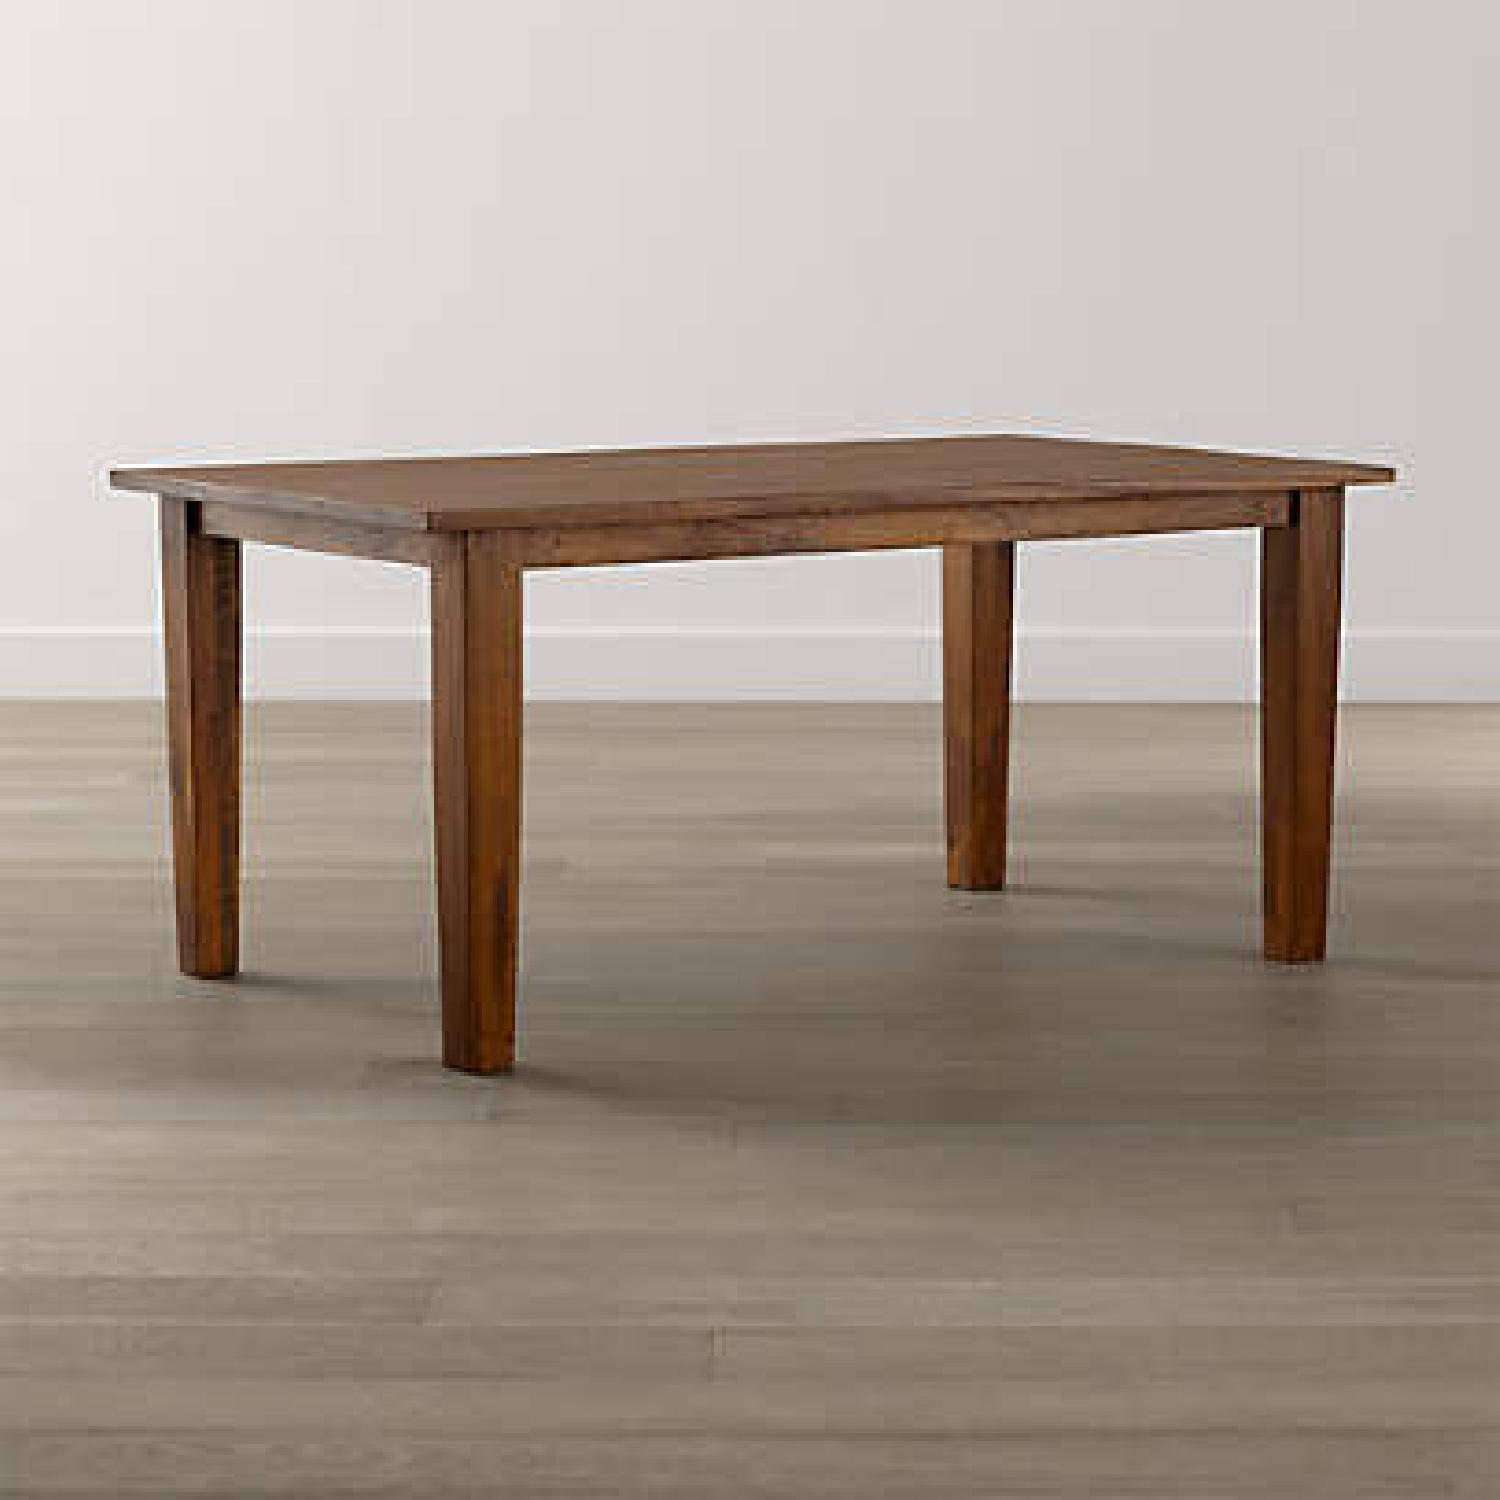 Crate & Barrel Basque Honey Brown Dining Table - image-5